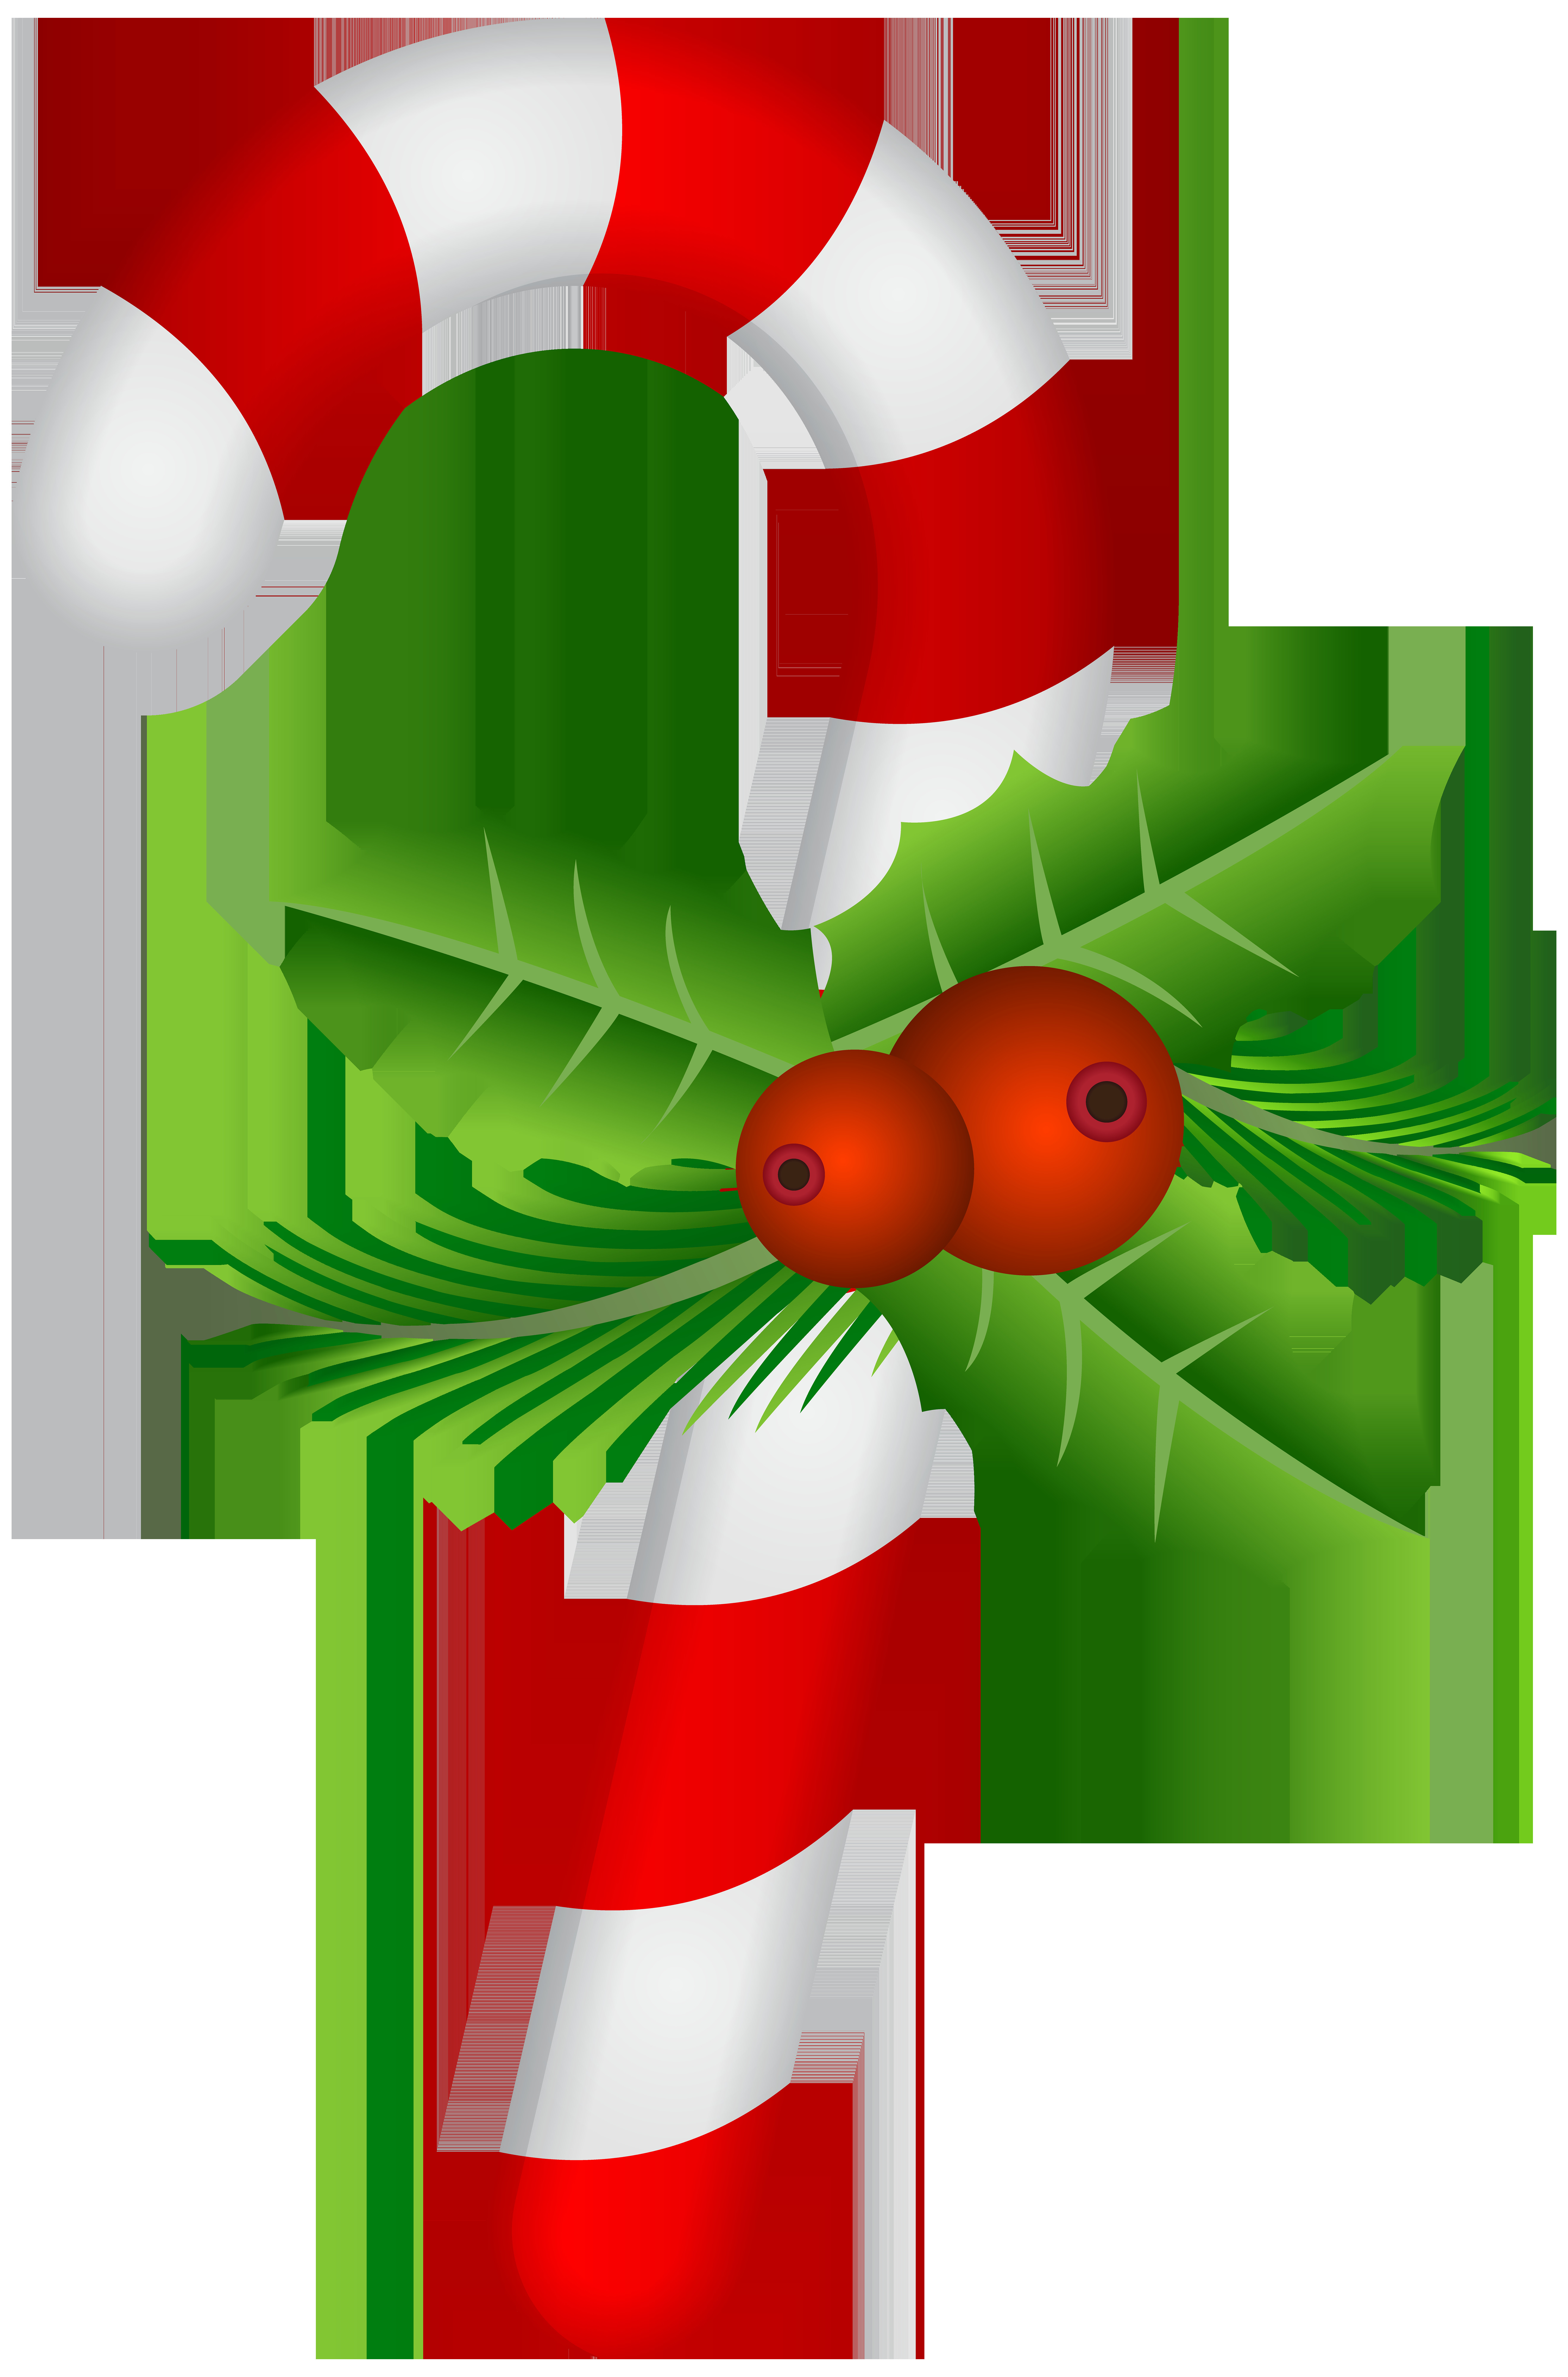 Christmas Candy Cane Images  Candy Cane with Holly Transparent PNG Clip Art